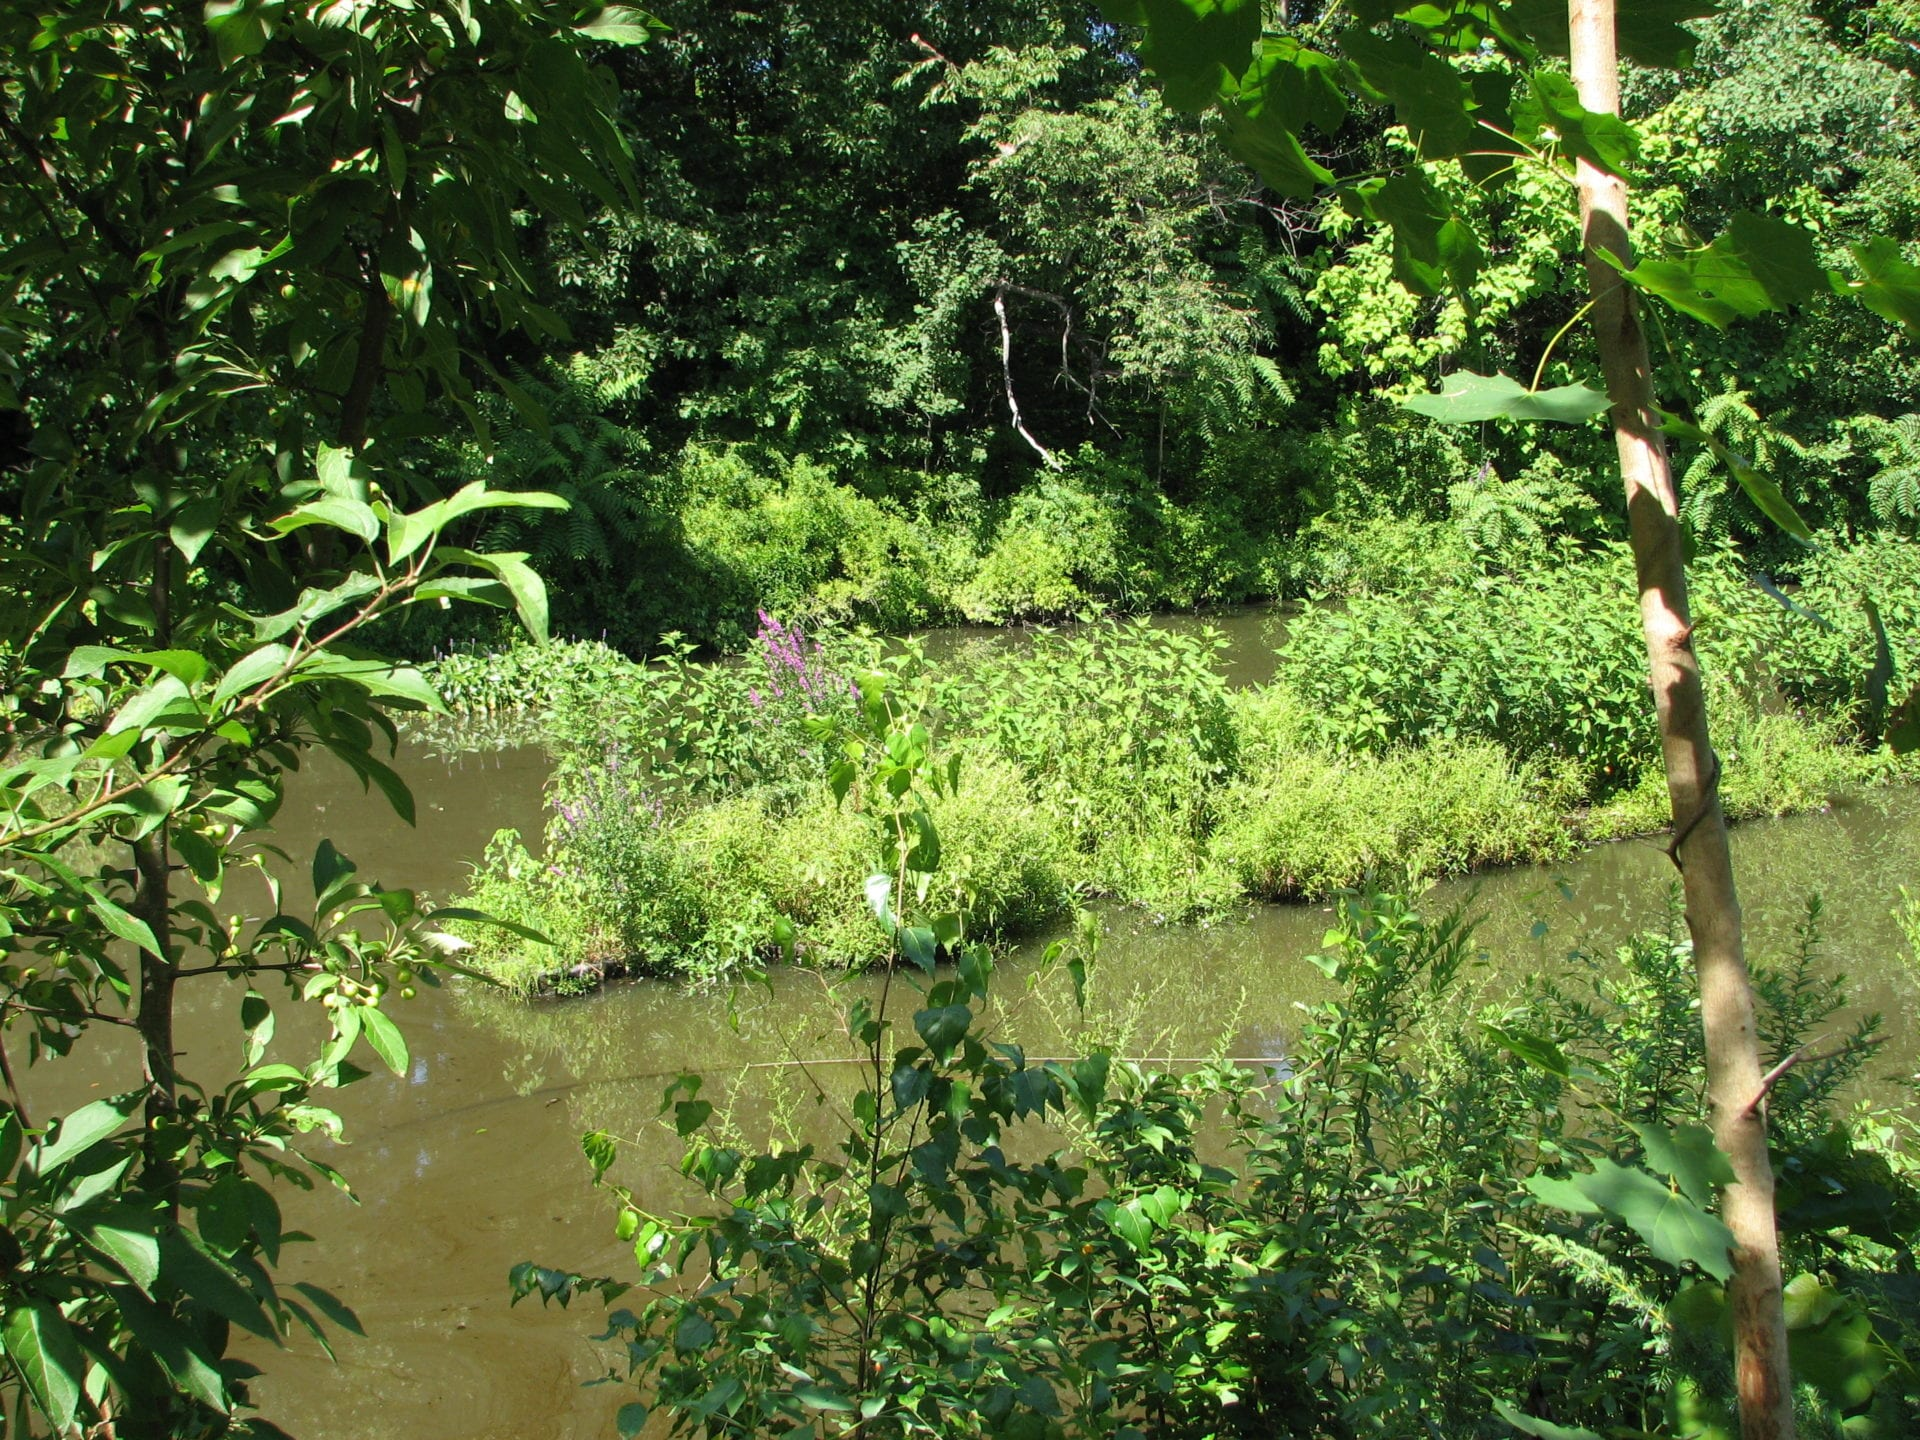 phytoremediation-canal-cleaning-island-of-plants